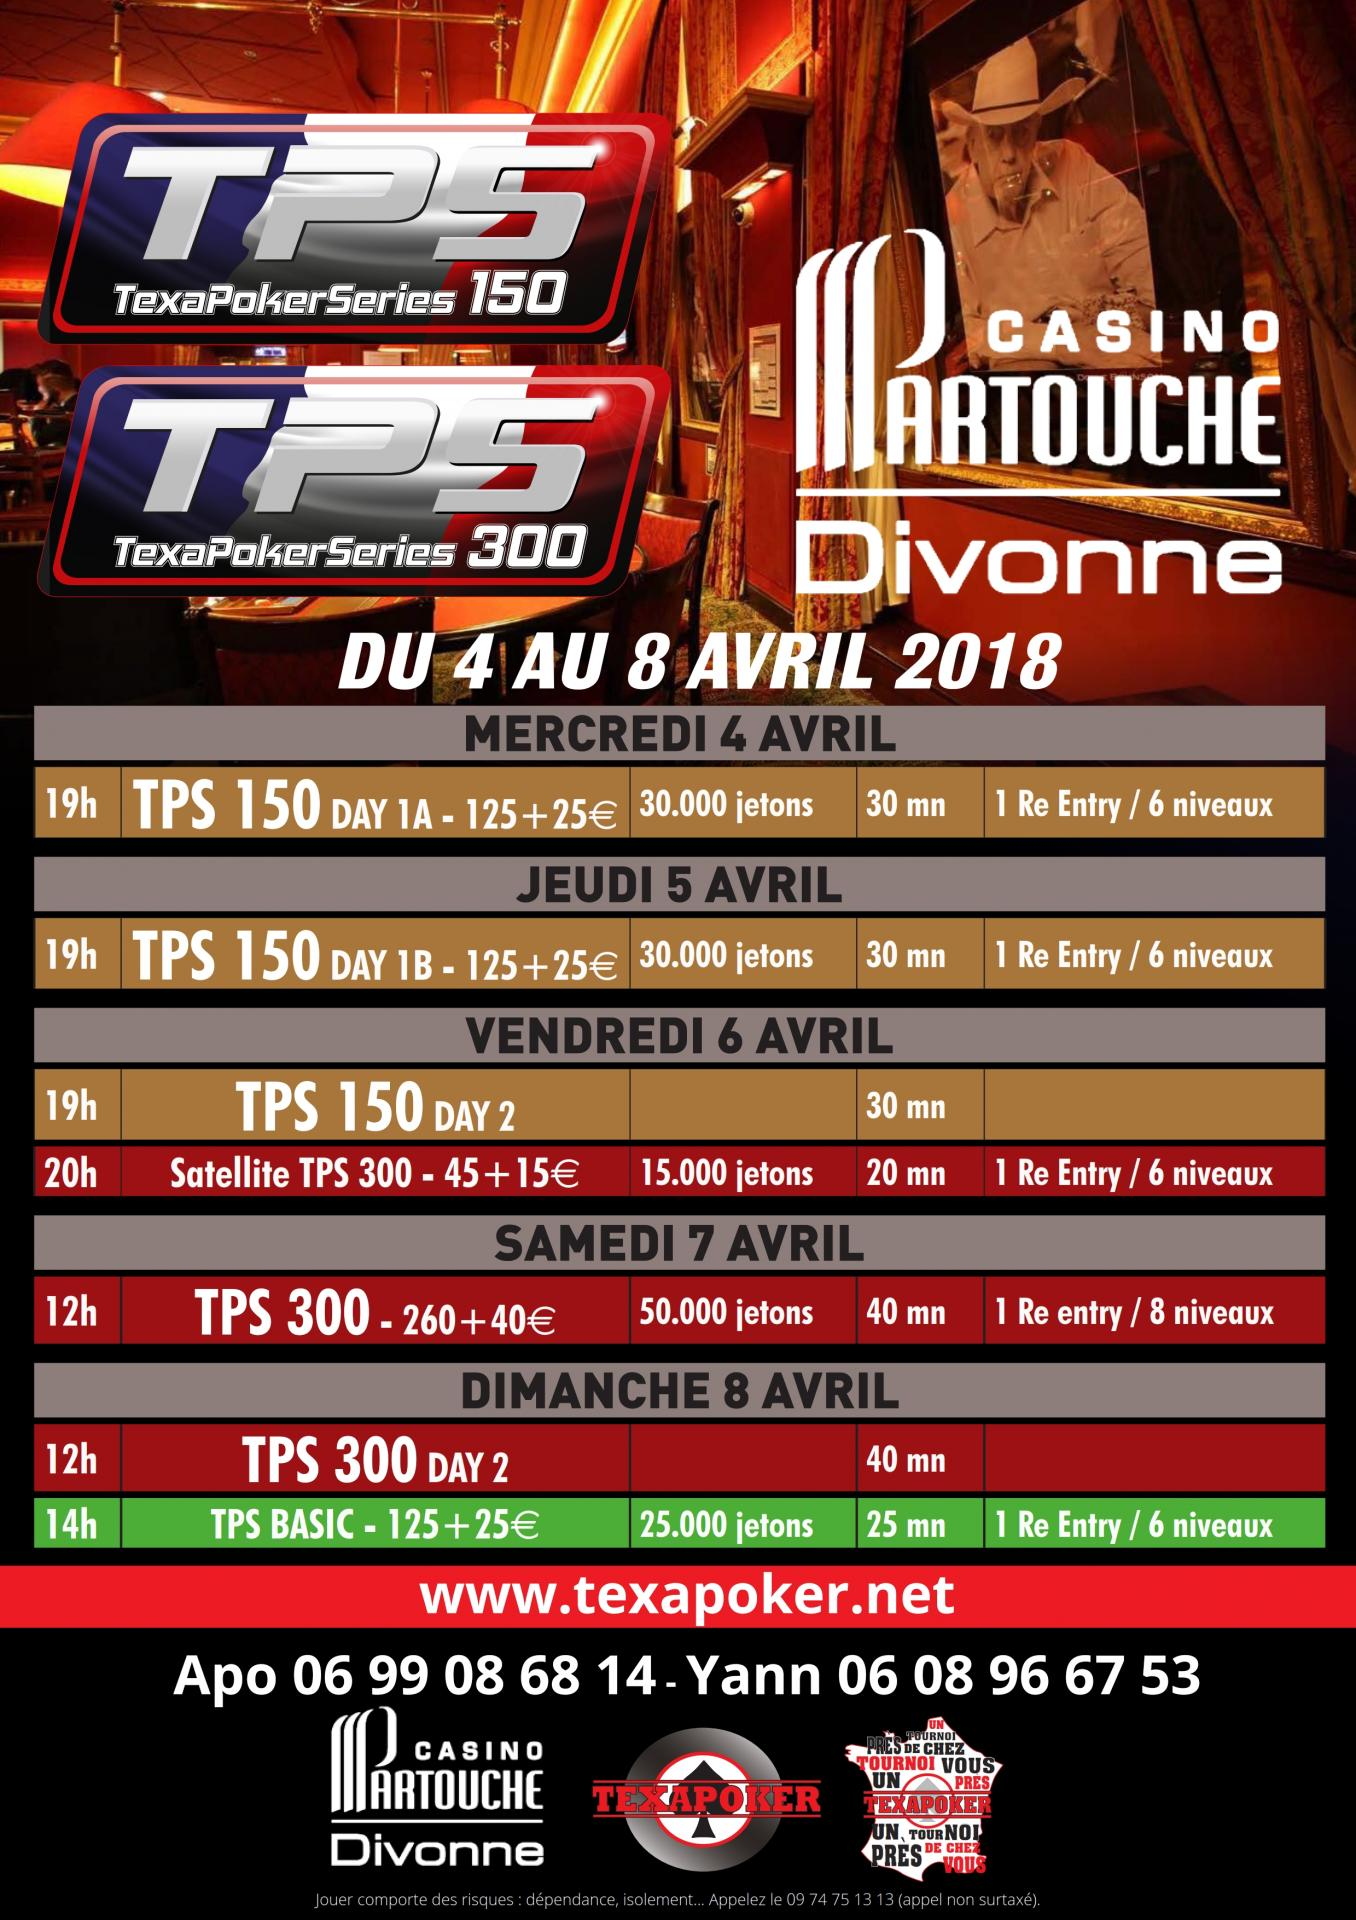 Affdivonnetps300 4 8avril2018 001